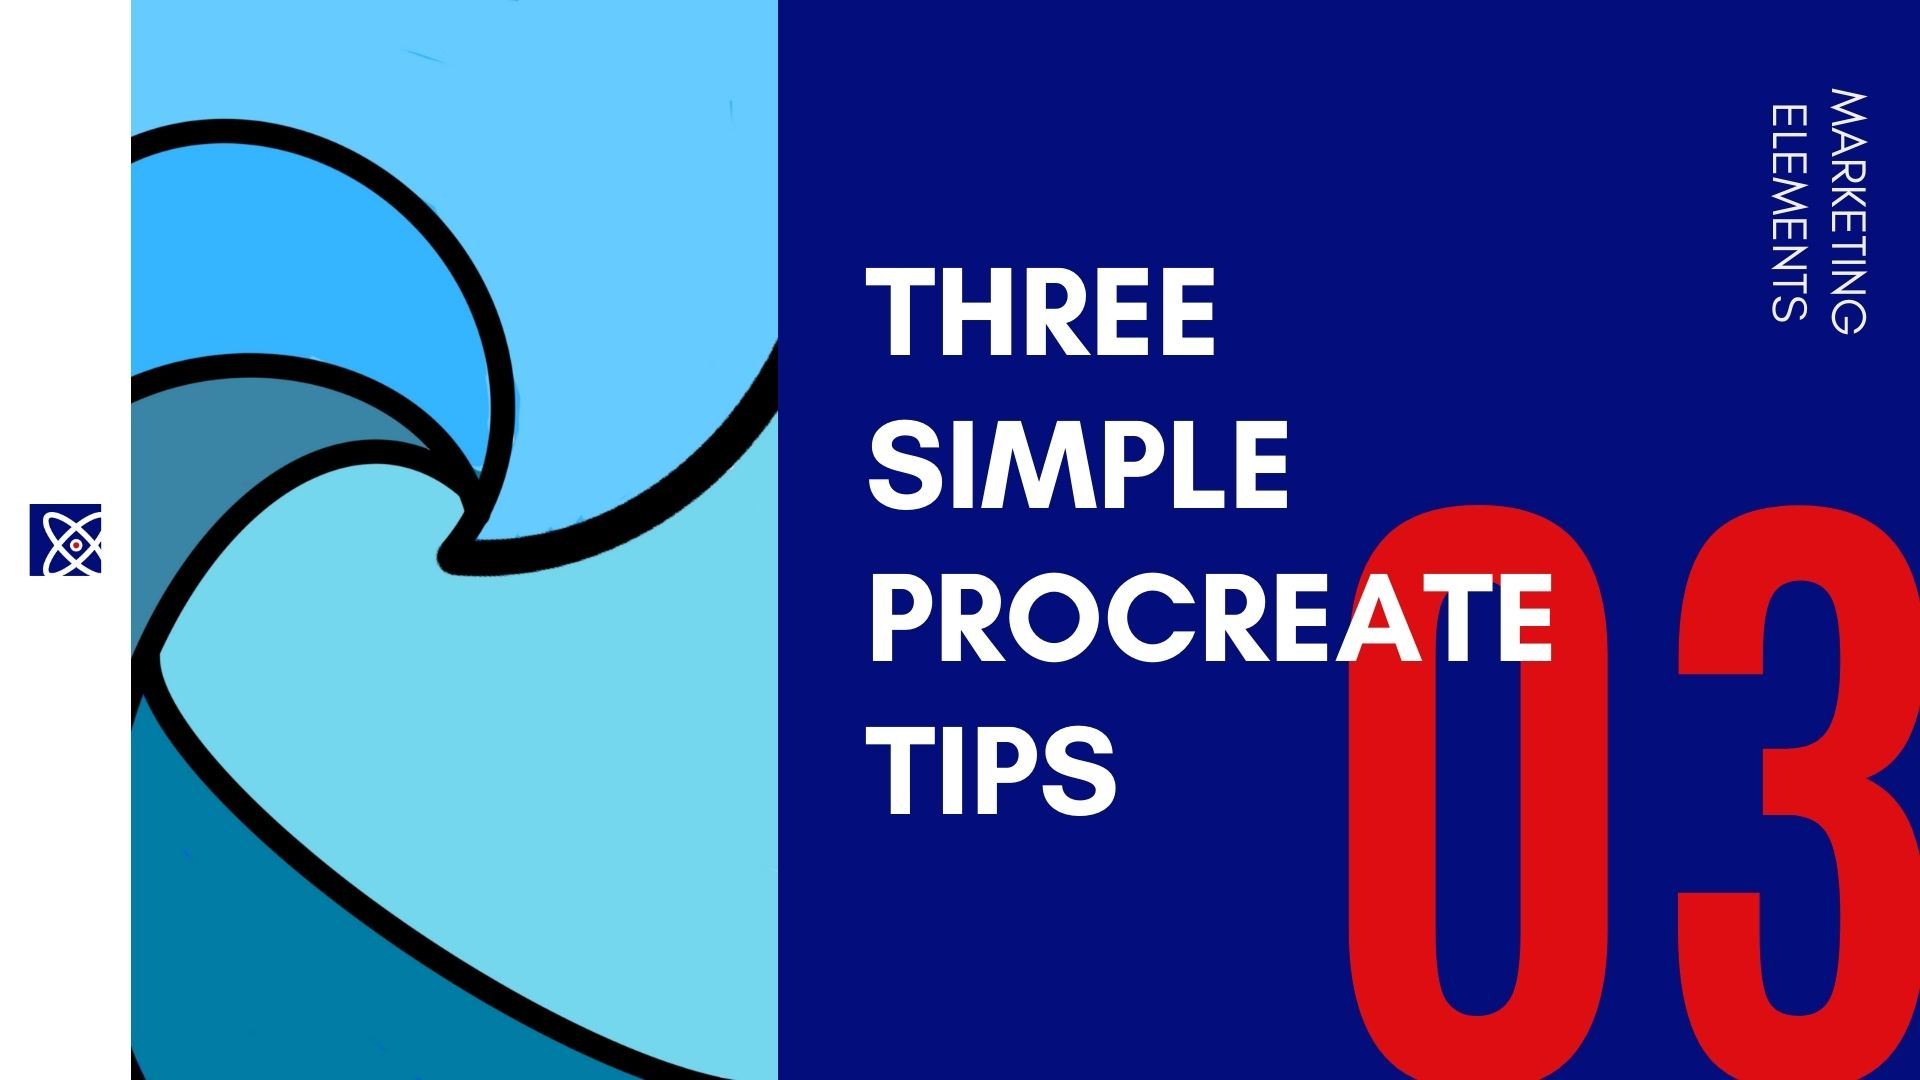 https://marketingelementsblog.com/2021/03/3-simple-procreate-tips/